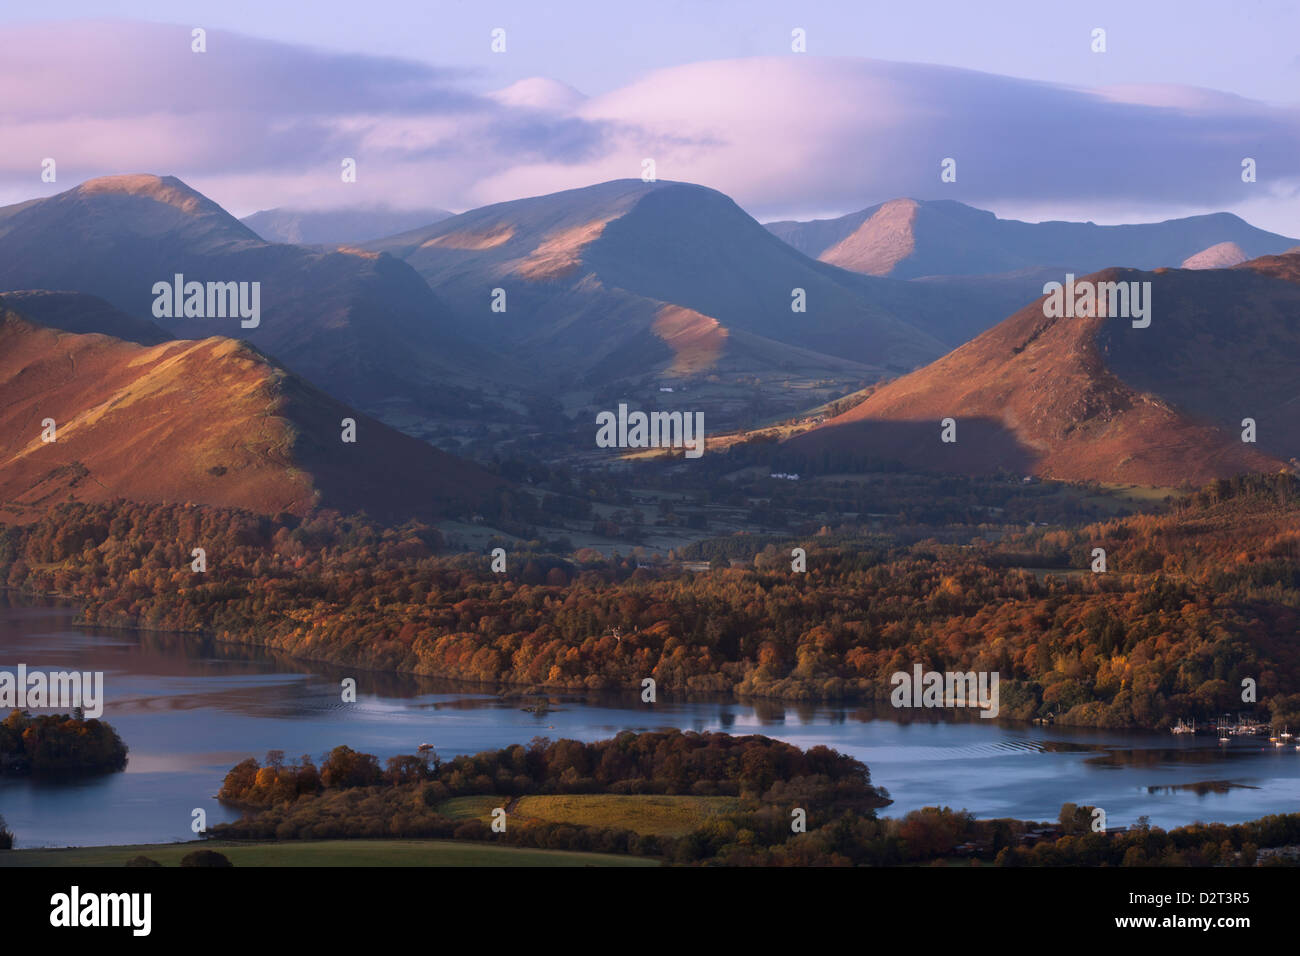 View over Derwentwater of Newlands Valley near Keswick, Lake District National Park, Cumbria, England, United Kingdom, - Stock Image